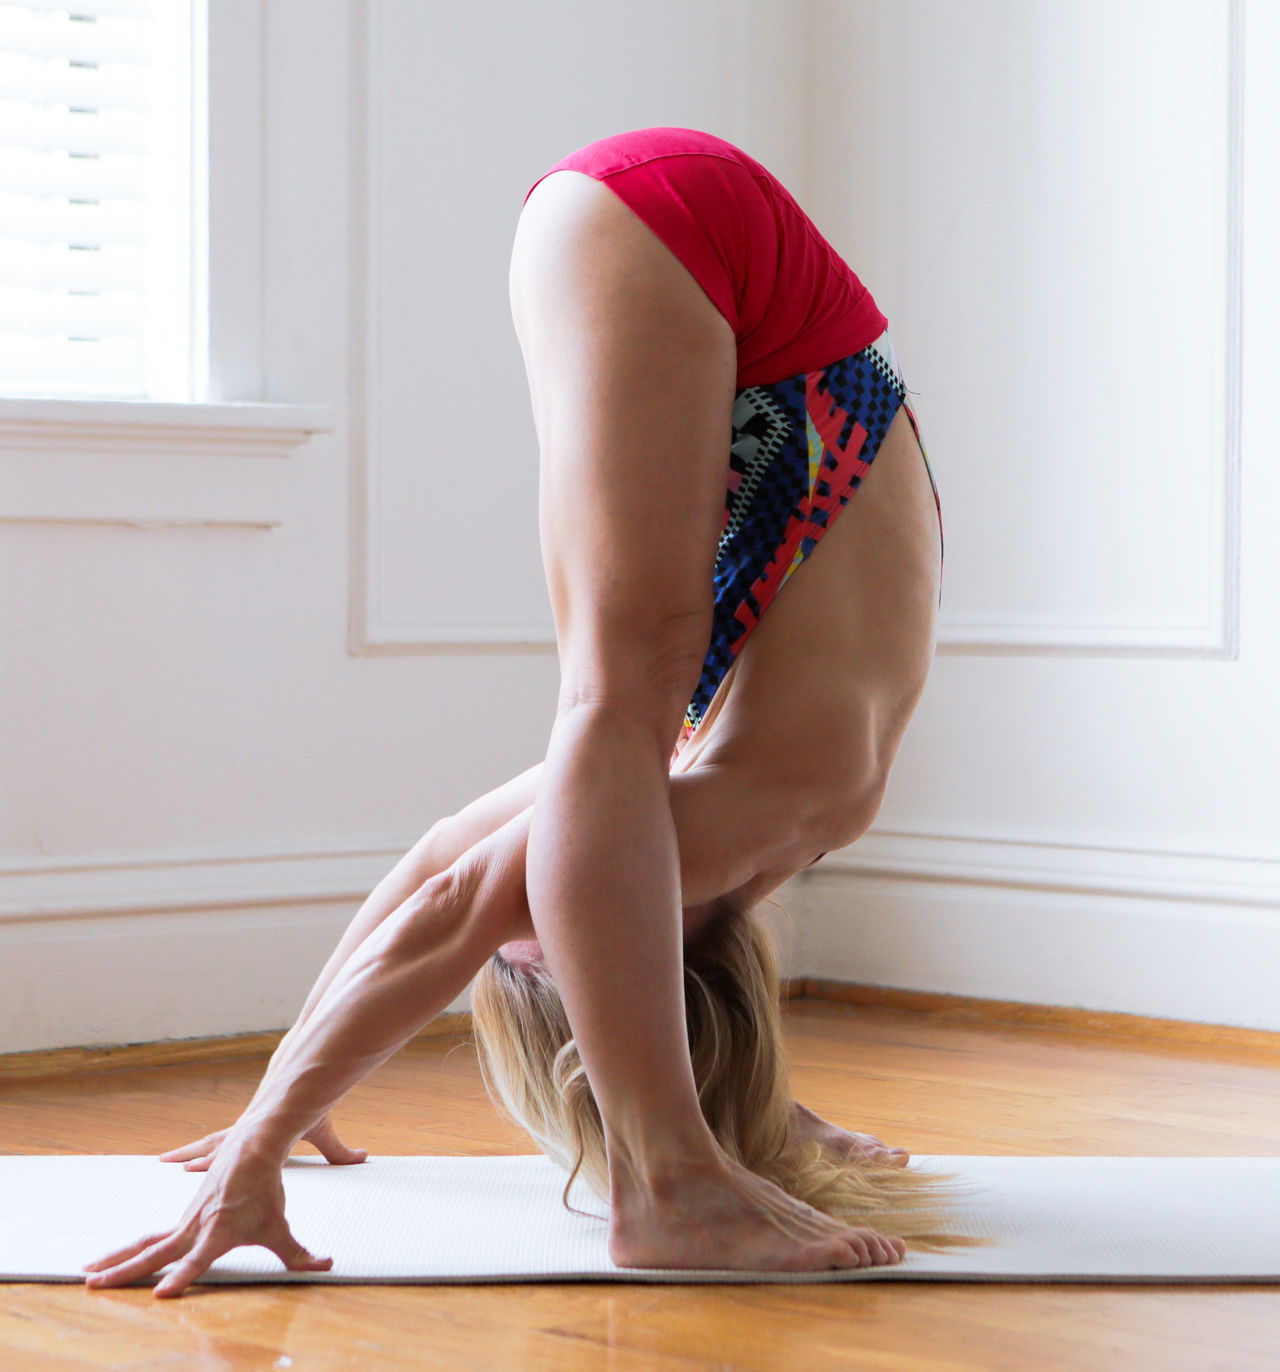 Adult Adults Only Ashtangayoga Back Barefoot Day Domestic Life Fitness Full Length Hardwood Floor Human Back Human Body Part Indoors  Lifestyles One Person People Rear View Yoga Yoga Pose